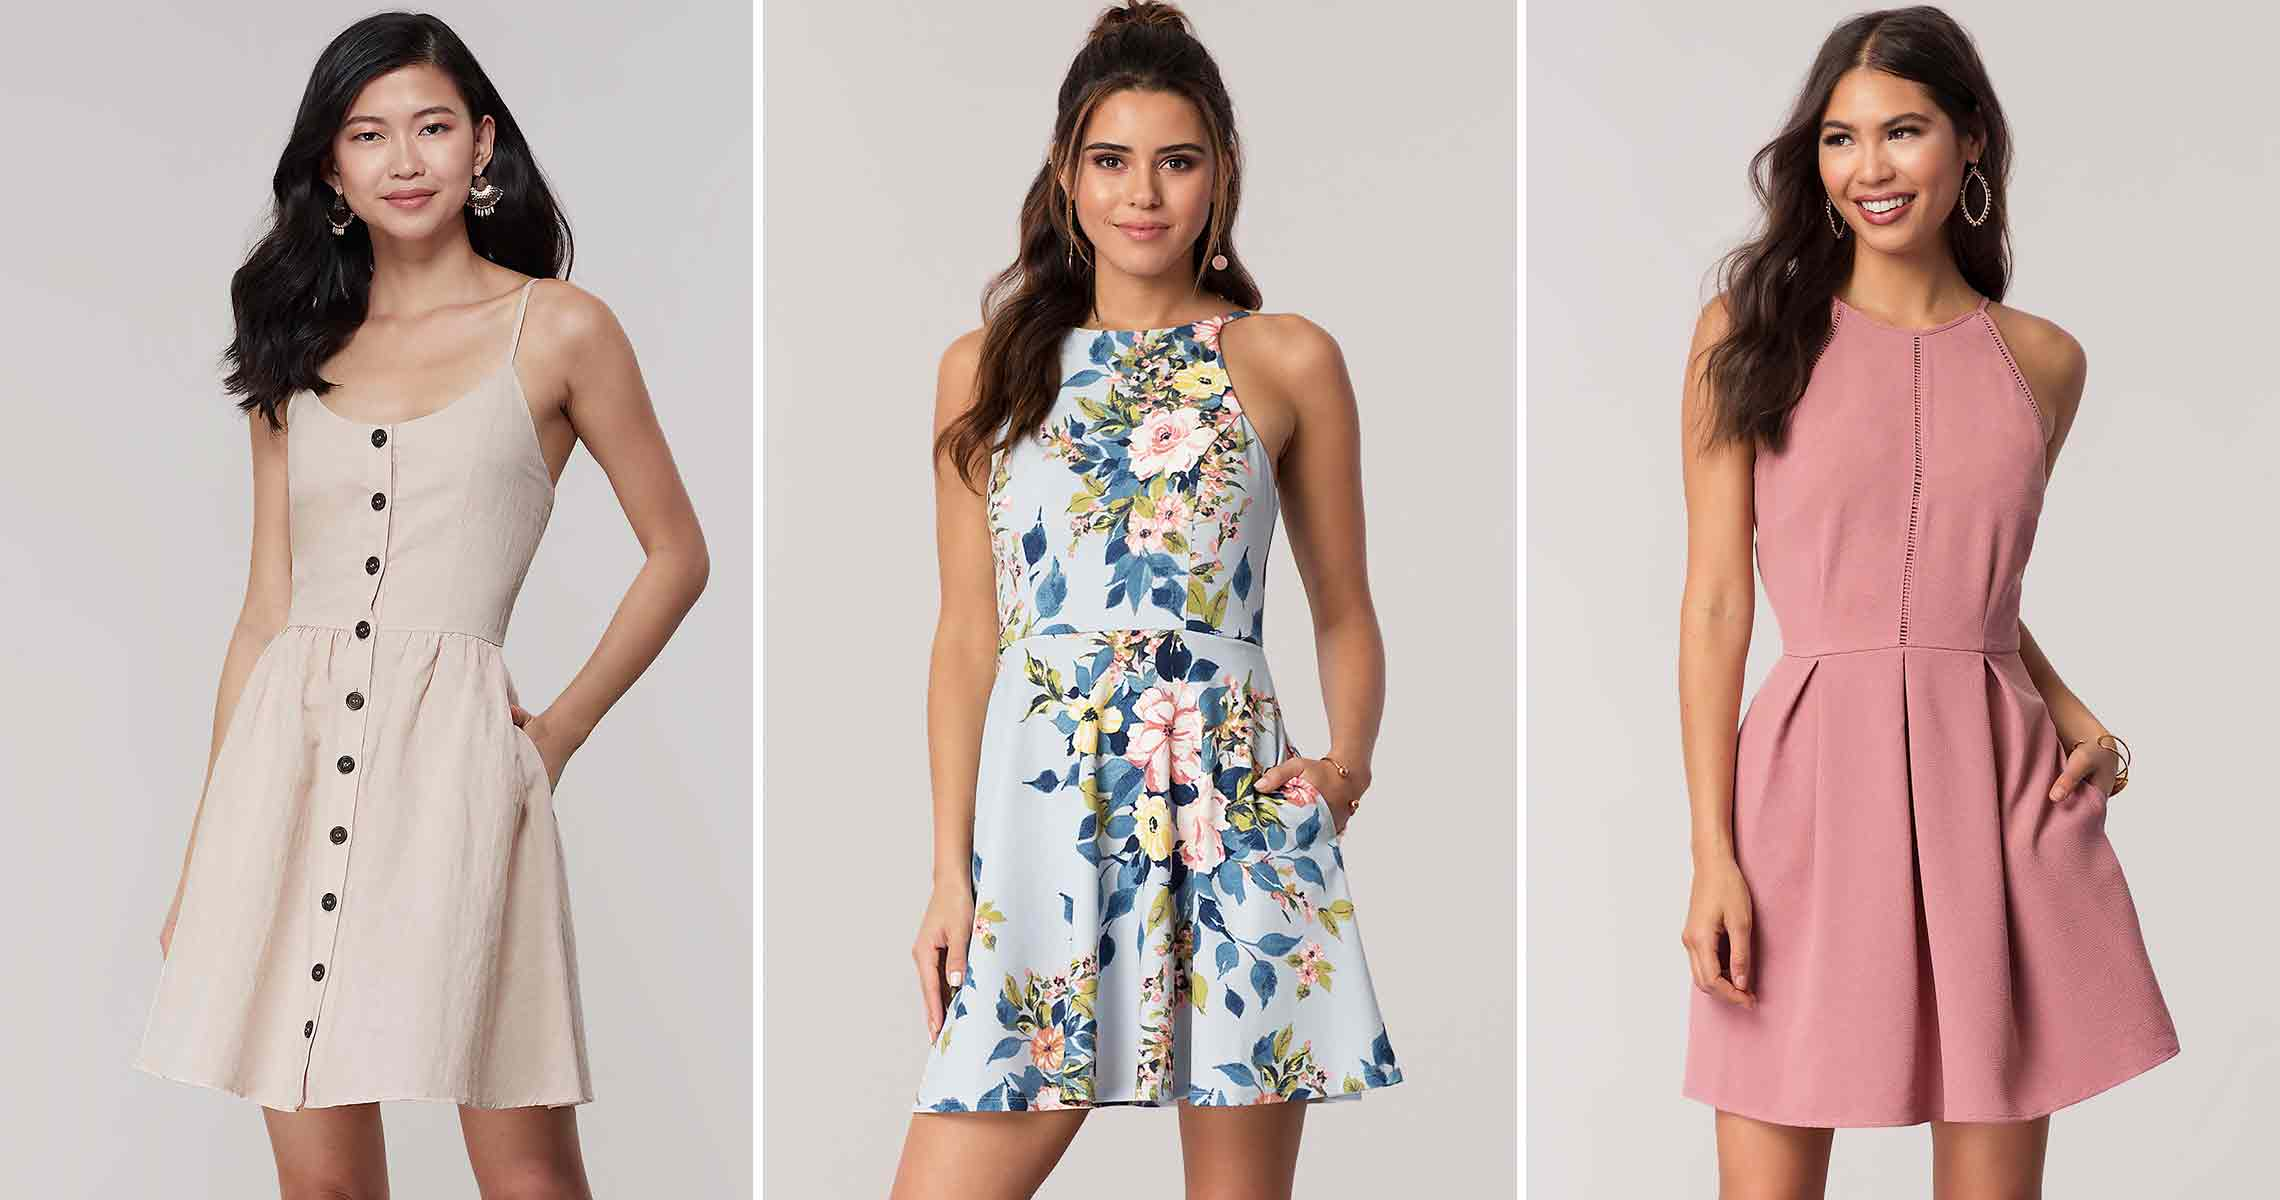 College Graduation Dress Styles for 2019